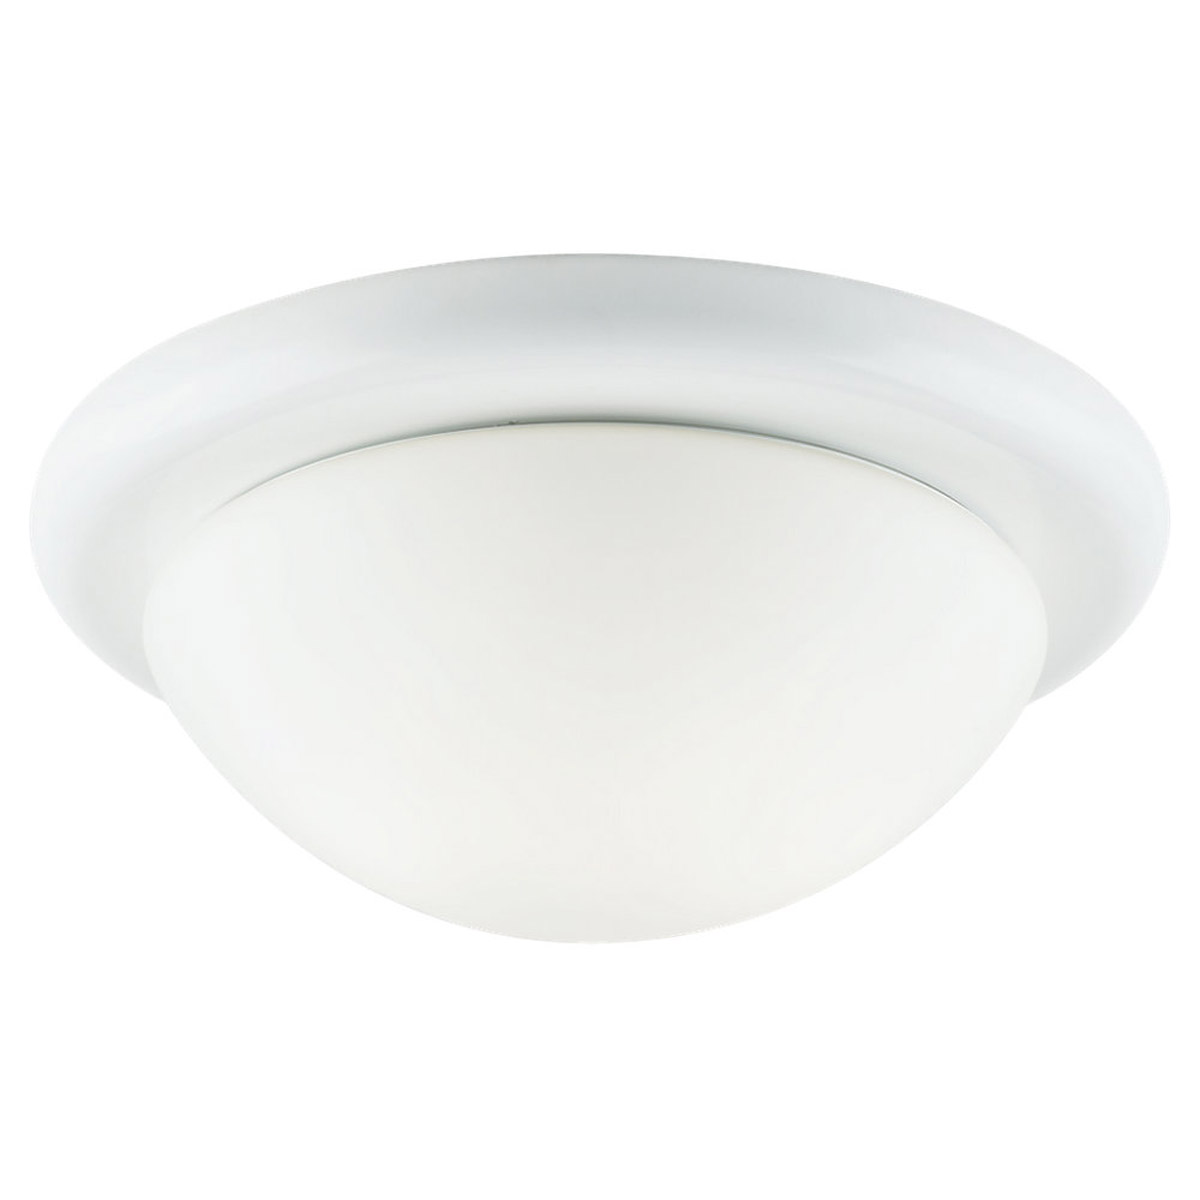 Sea Gull Lighting Twist-Lock Fitters 1 Light Flush Mount in White 53069-15 photo